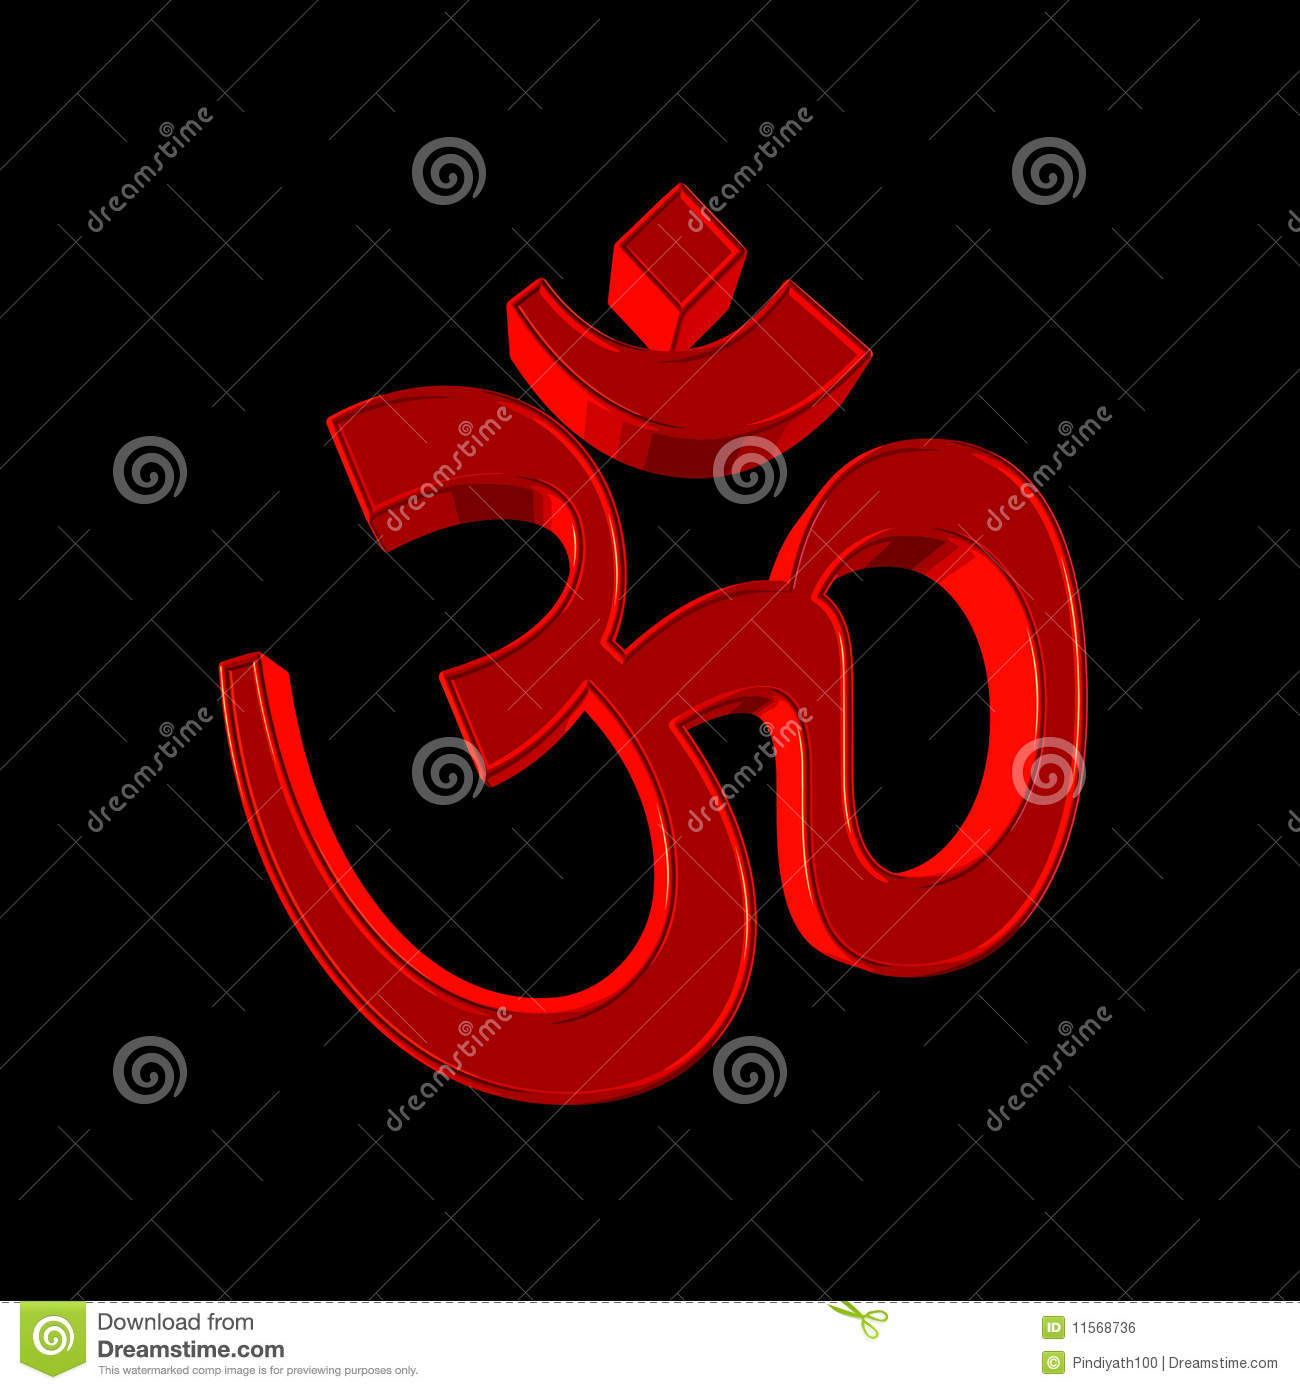 Aum Om Sign Royalty Free Stock Image Image 11568736